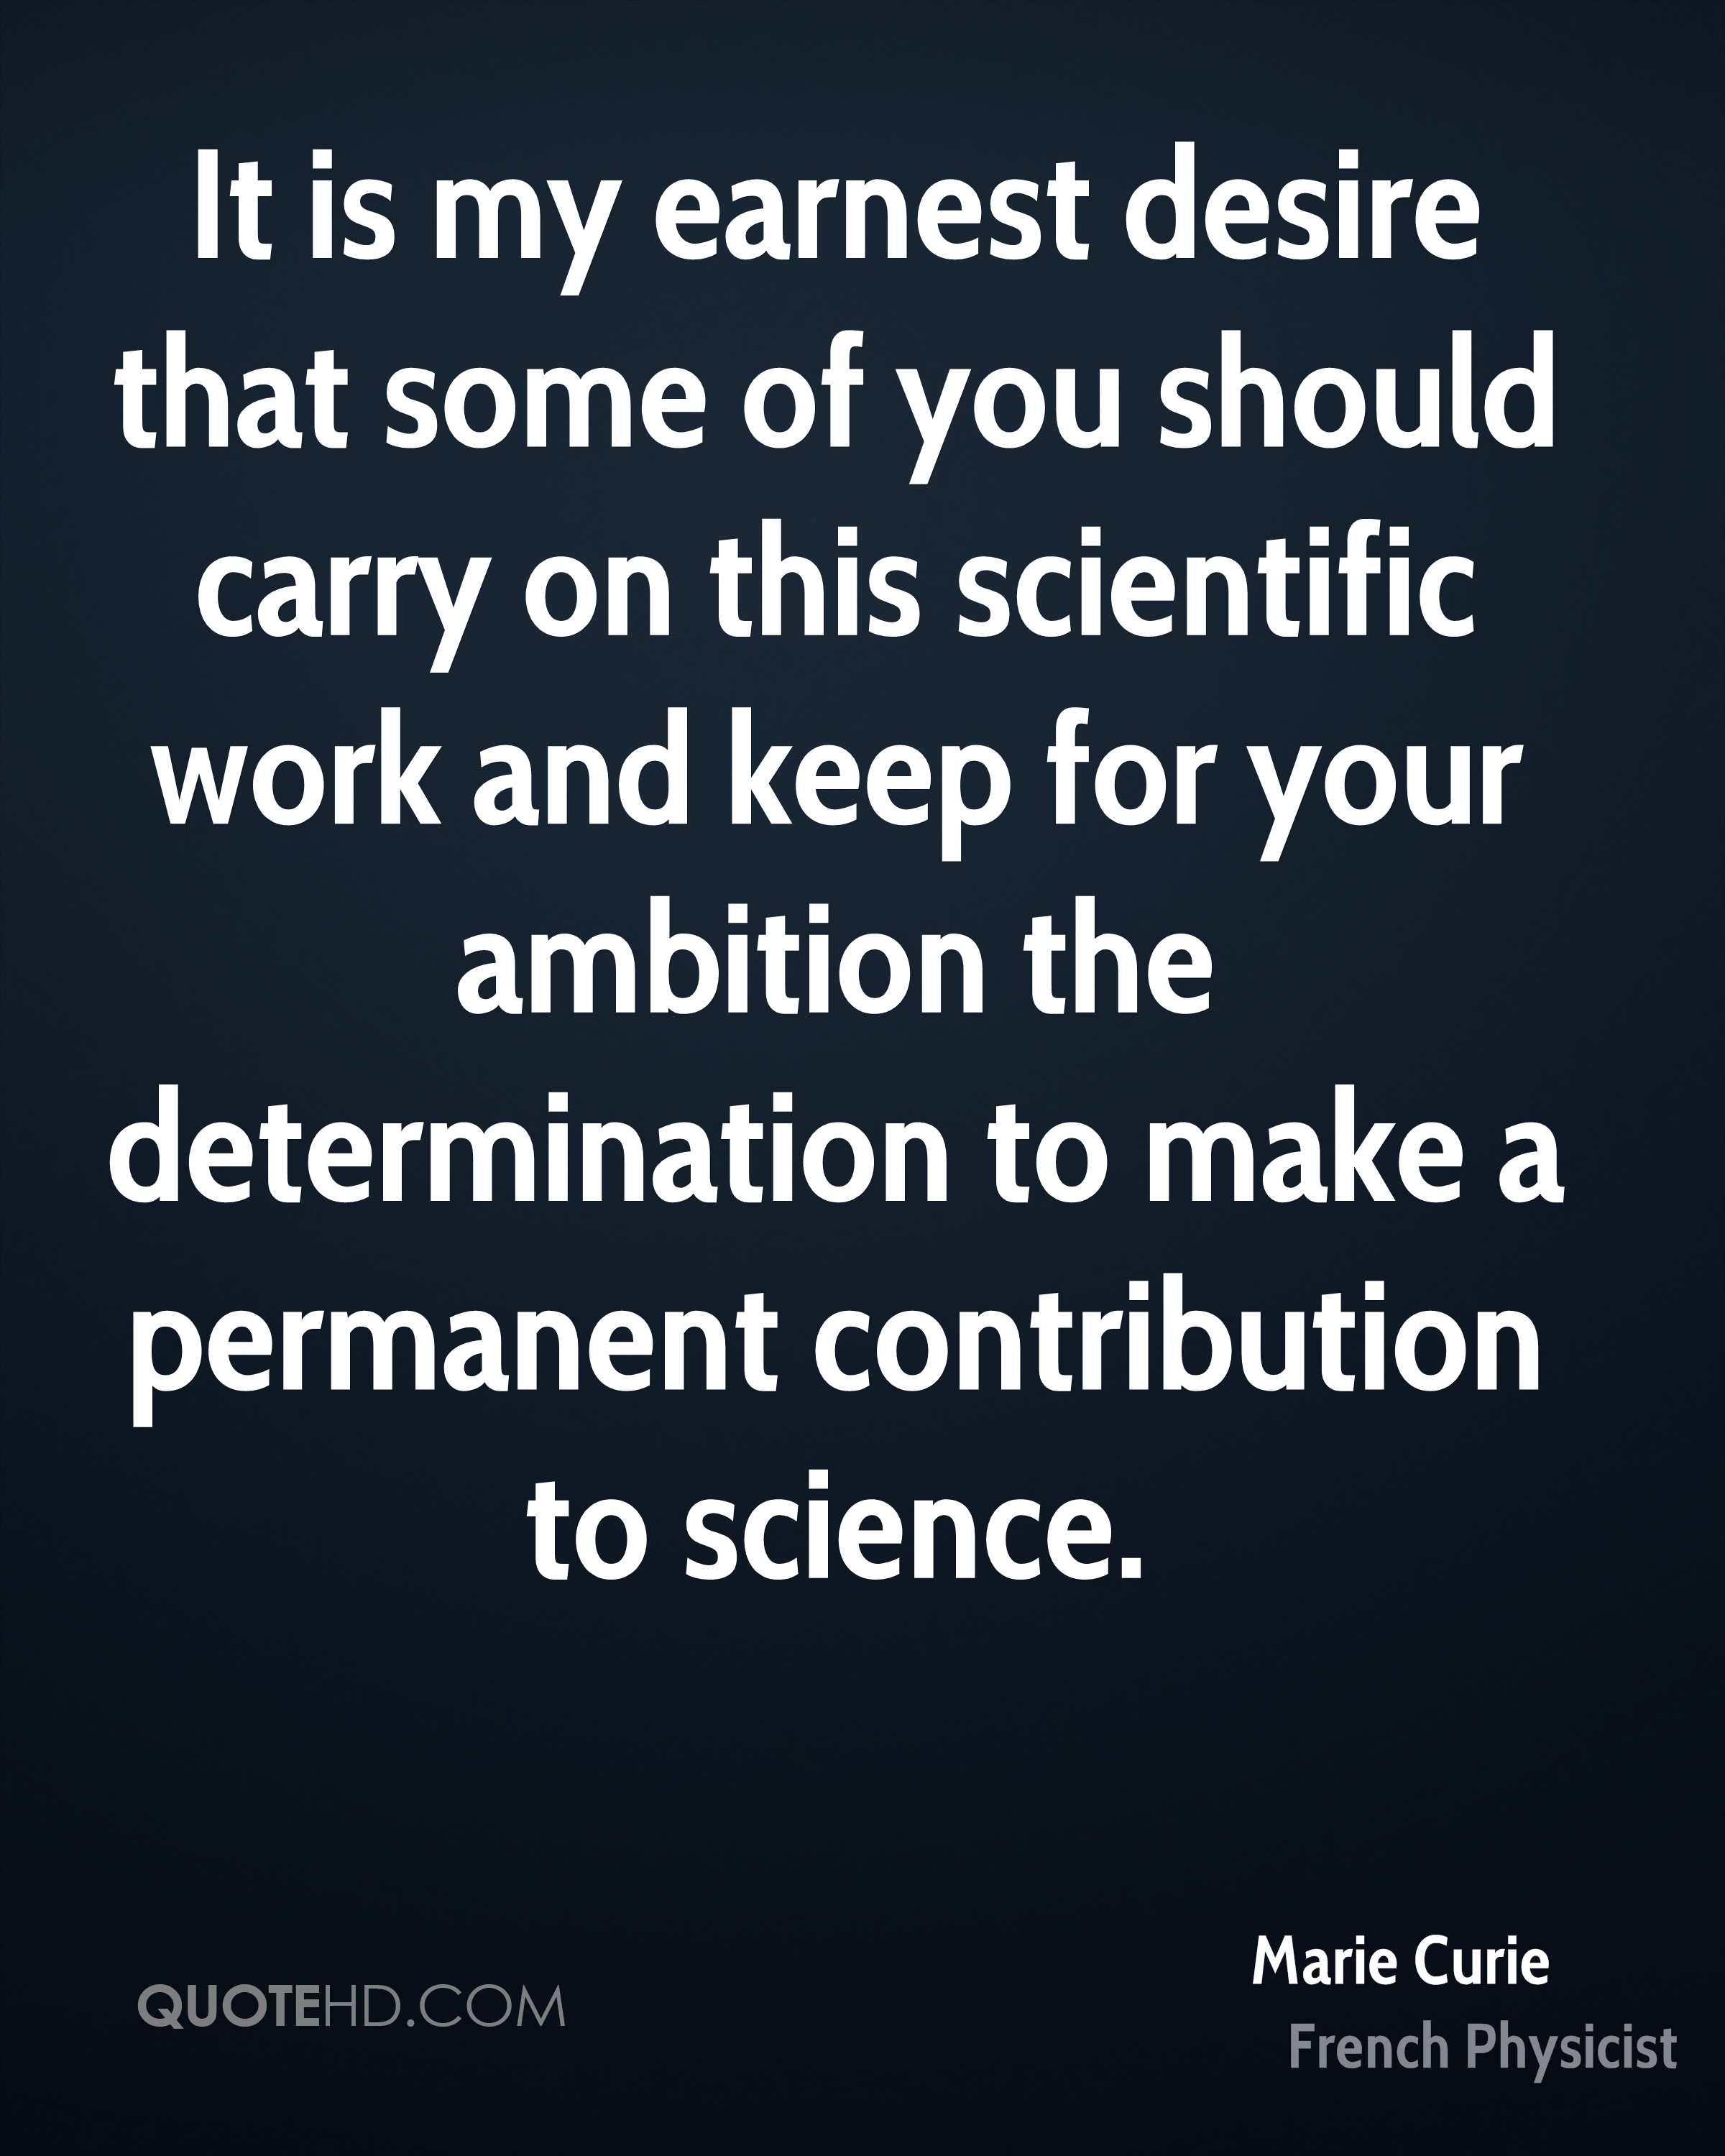 It is my earnest desire that some of you should carry on this scientific work and keep for your ambition the determination to make a permanent contribution to science.